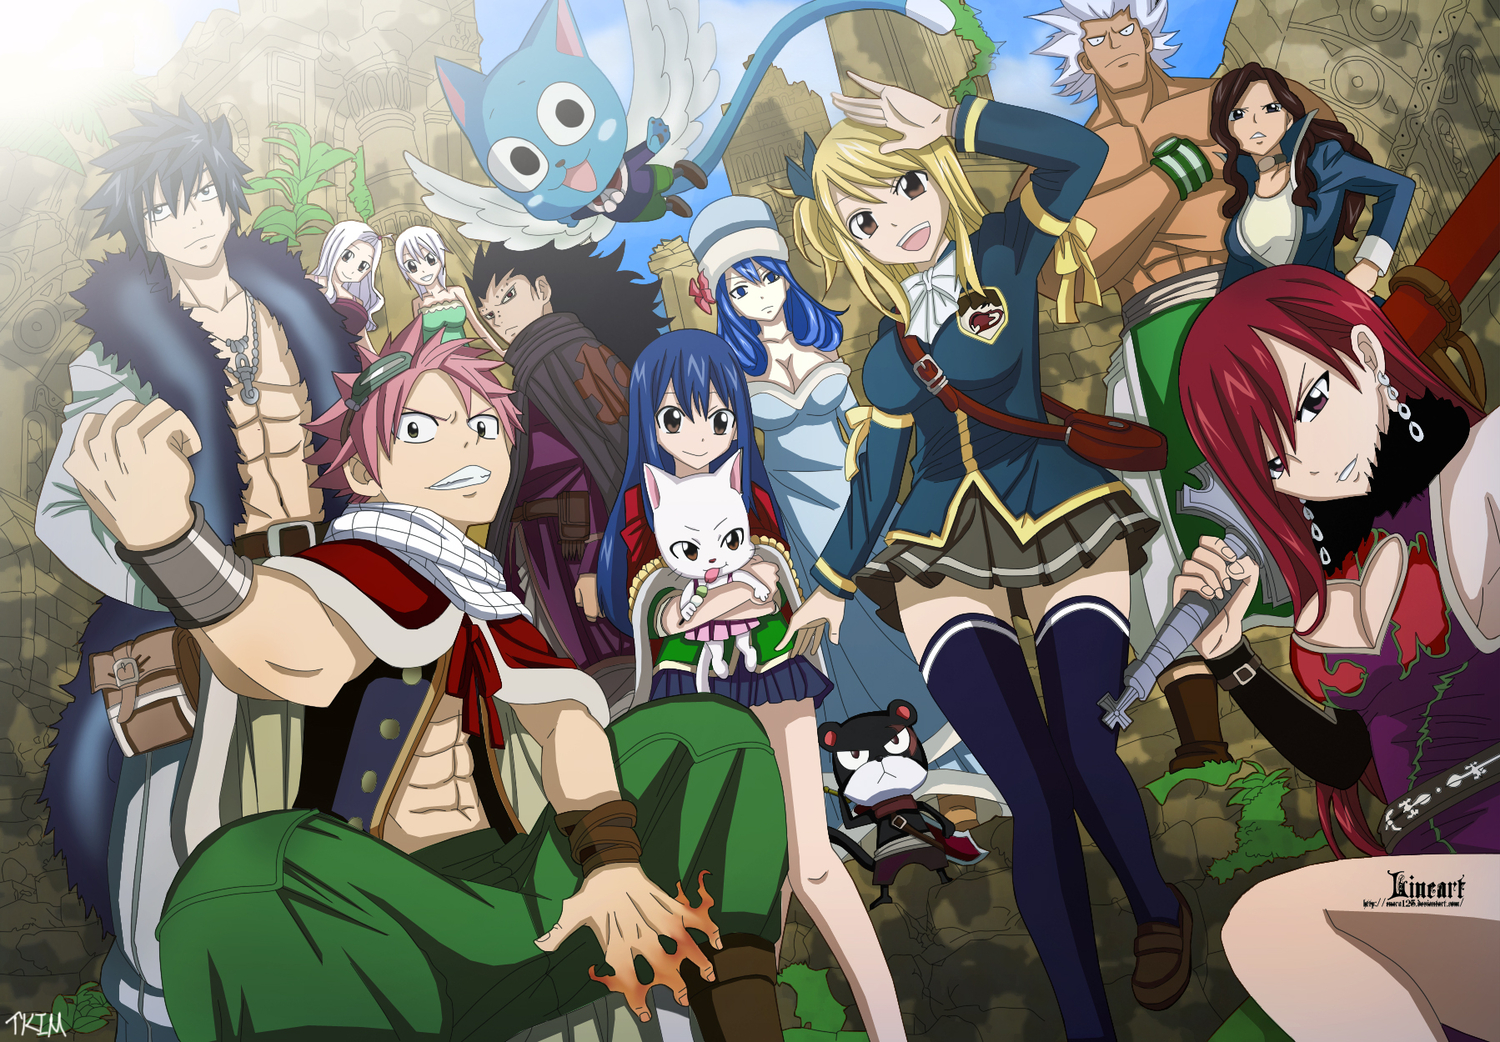 Fairy Tail Wallpaper PC Background 5989 Wallpaper Cool 1500x1042